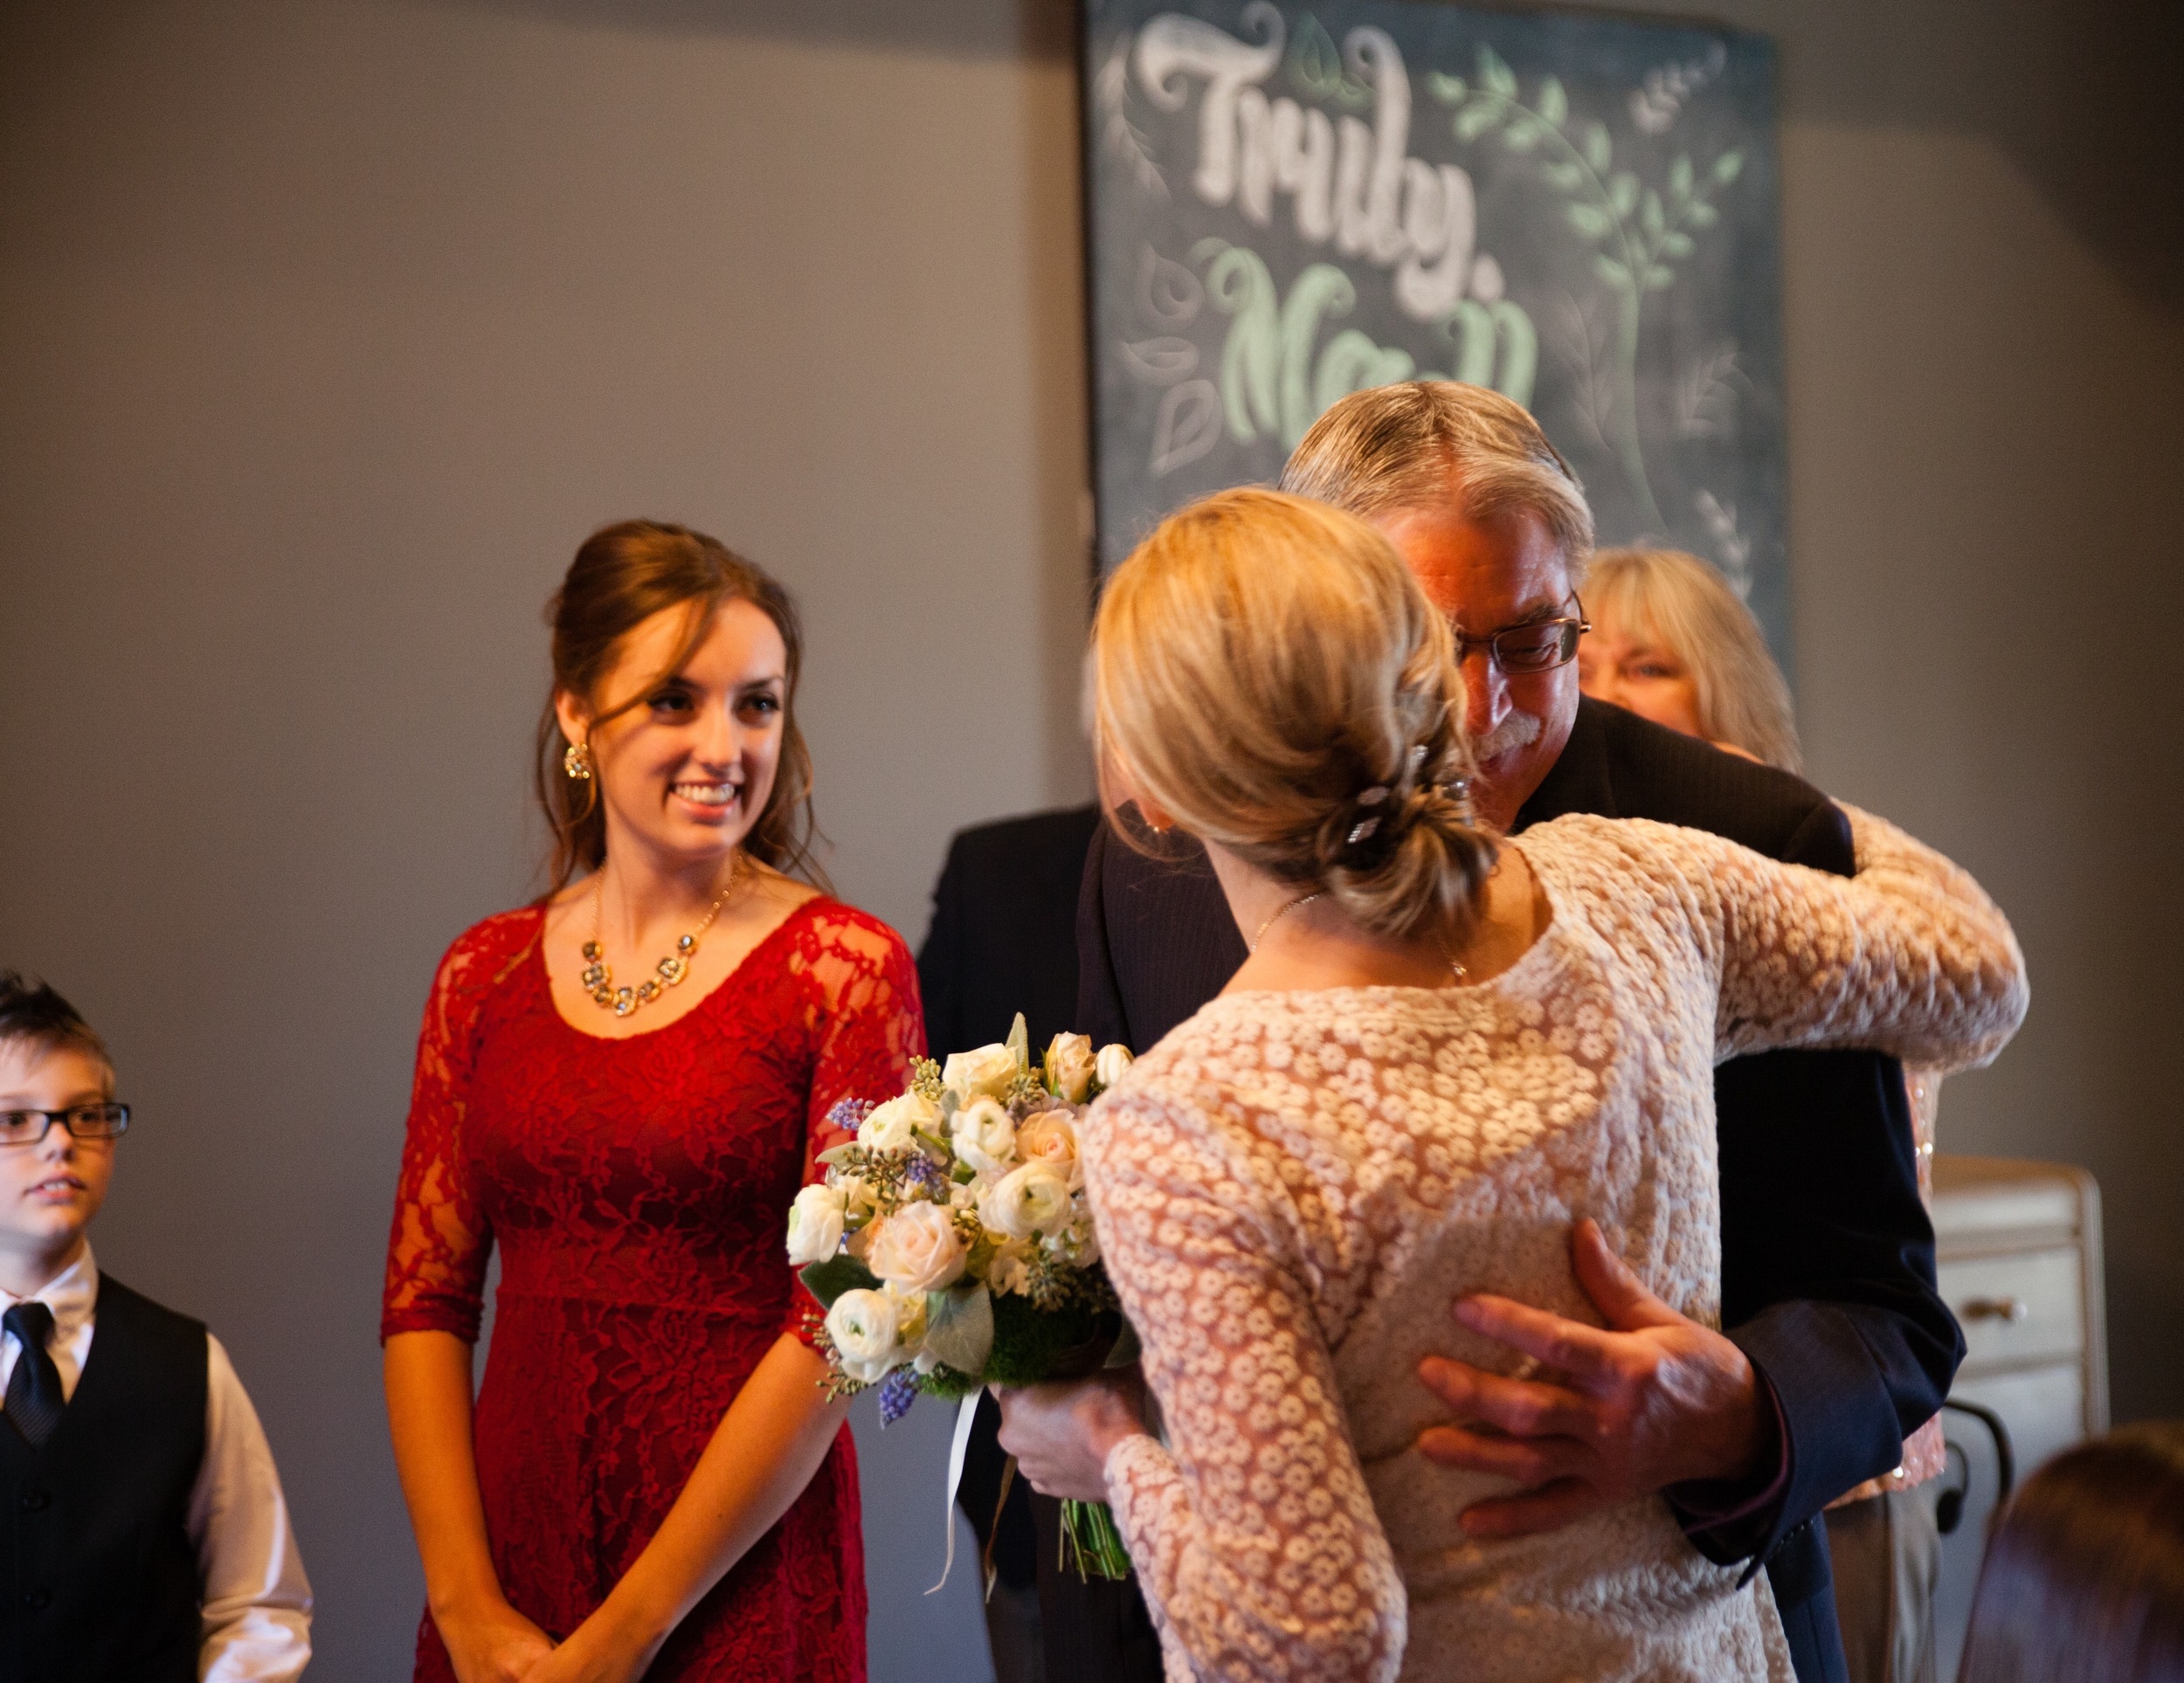 The_Vow_Exchange_028.jpg